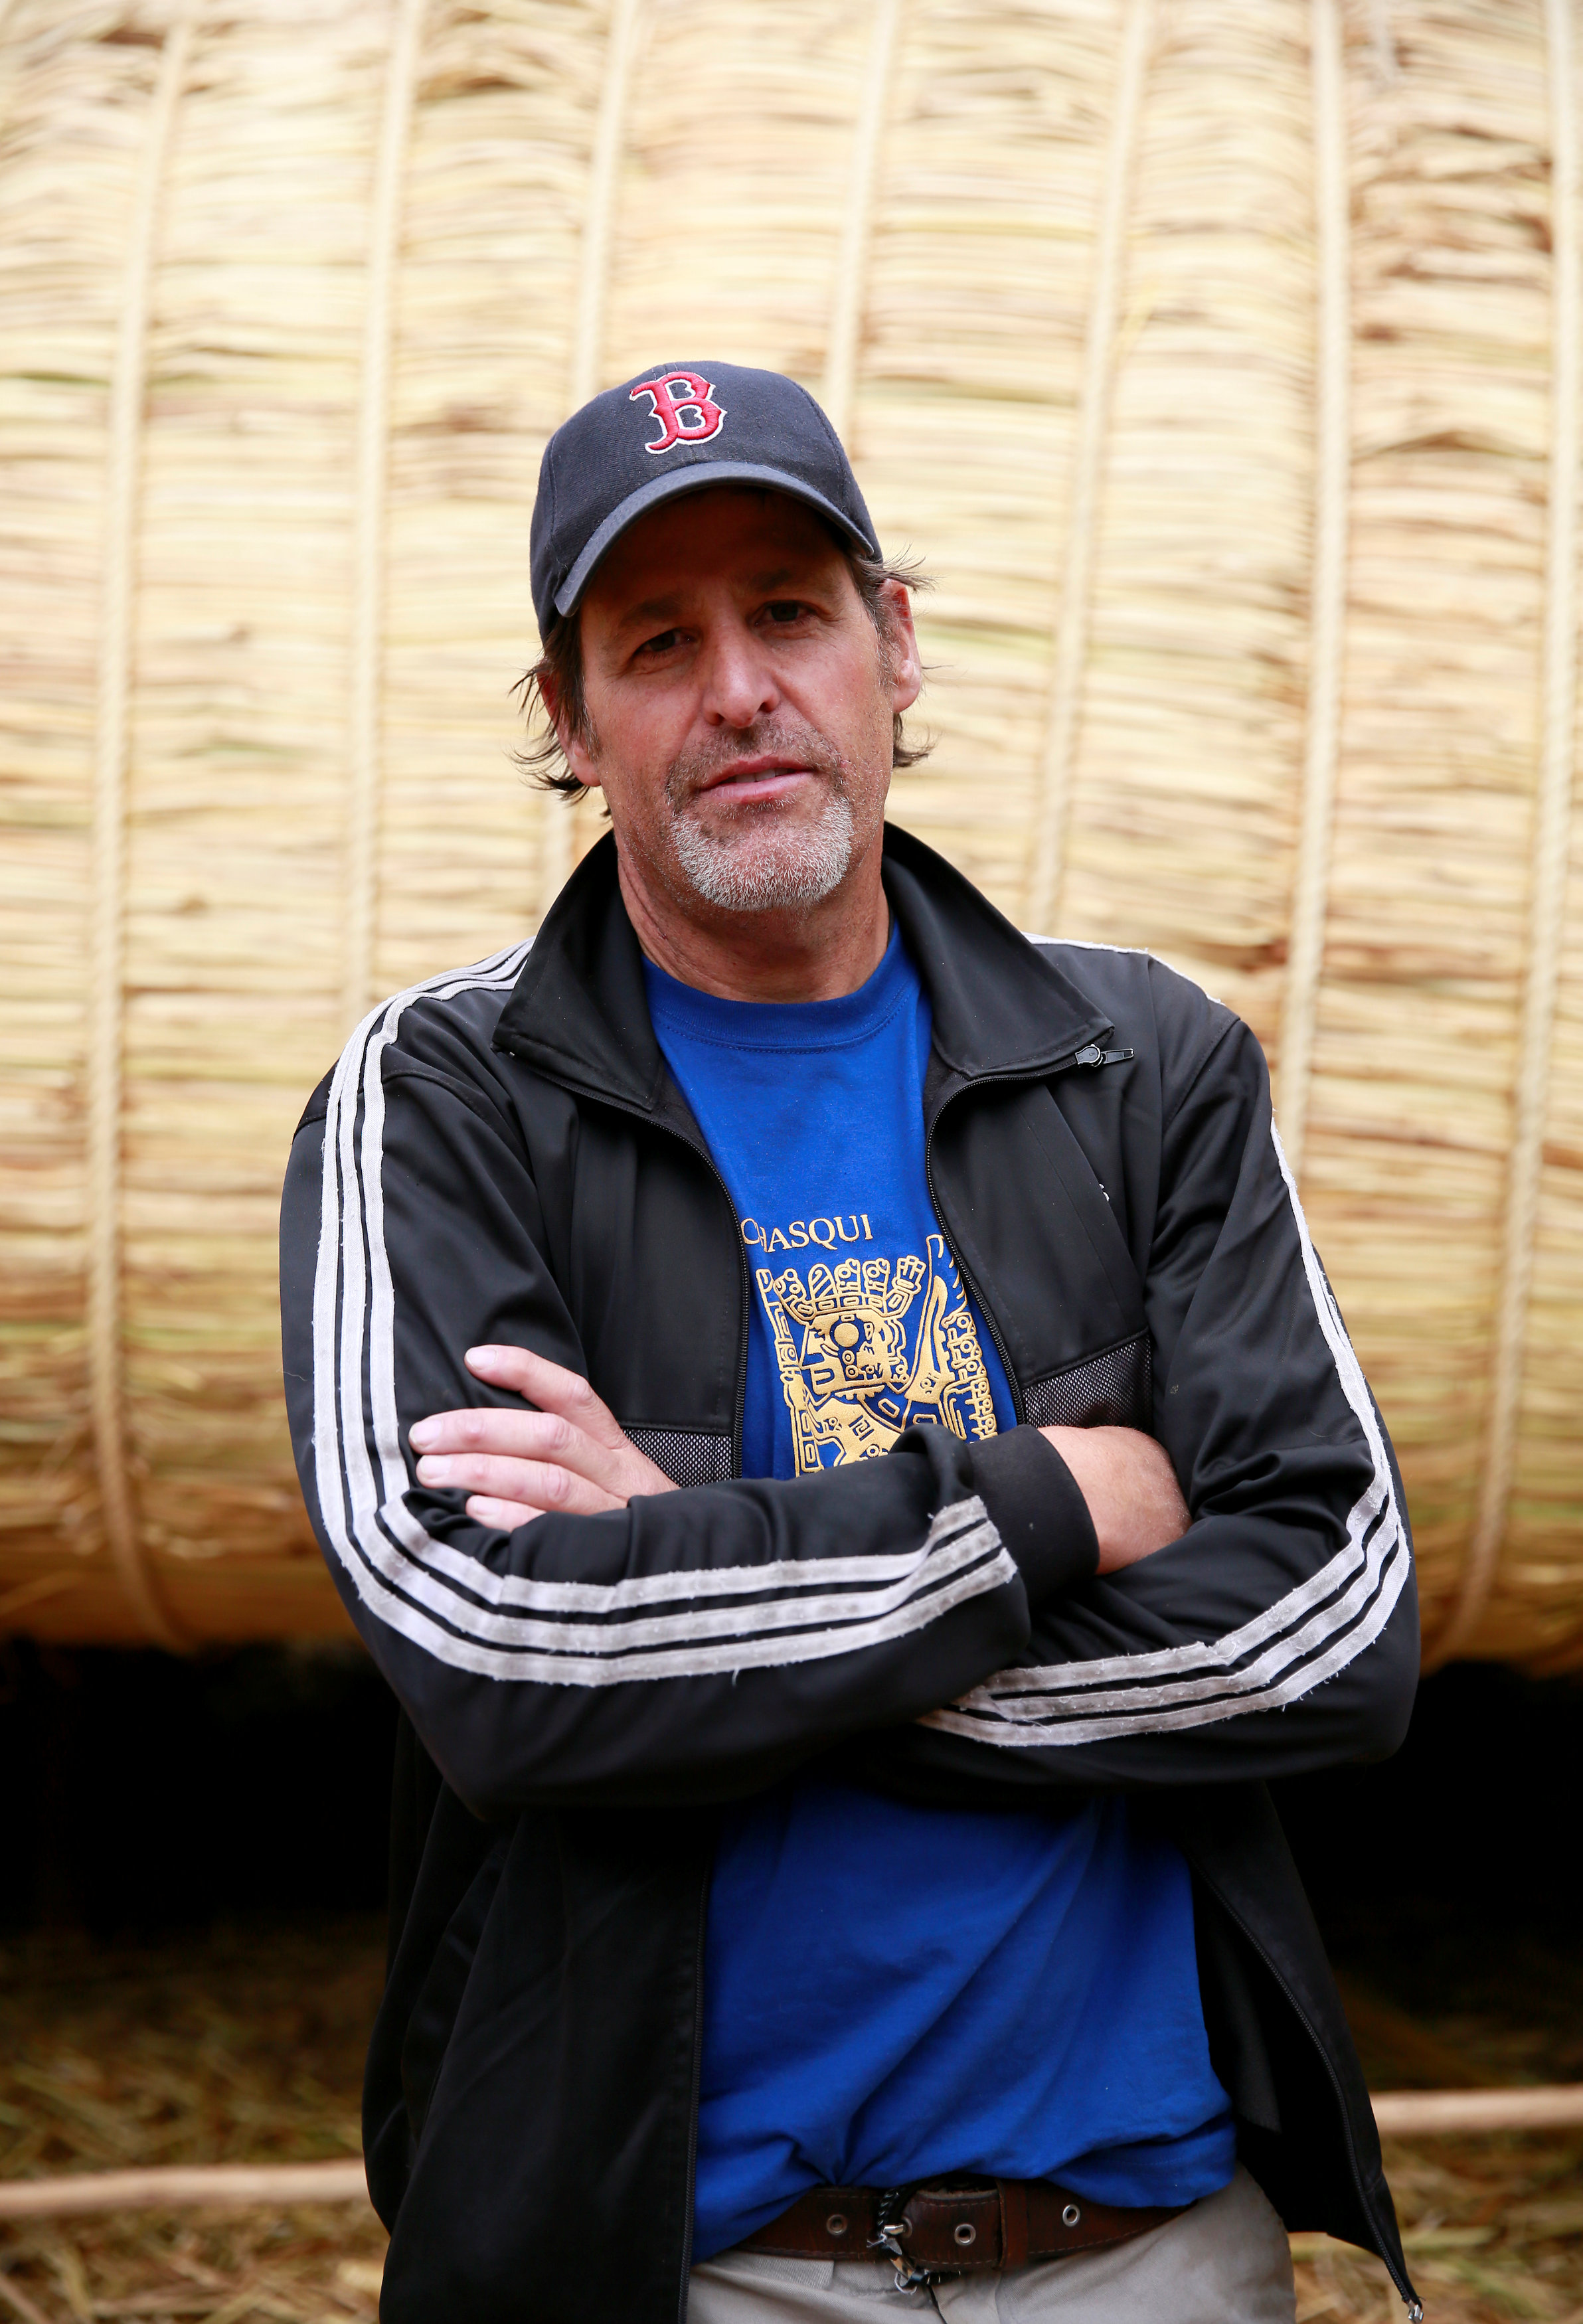 Phil Buck, a 51-year-old explorer from the United States, poses for a picture in front of the 'Viracocha III', a boat made only from the totora reed, which he will captain on a journey expected to last six months, crossing the Pacific from Chile to Australia, in La Paz, Bolivia, October 19, 2016. REUTERS/David Mercado